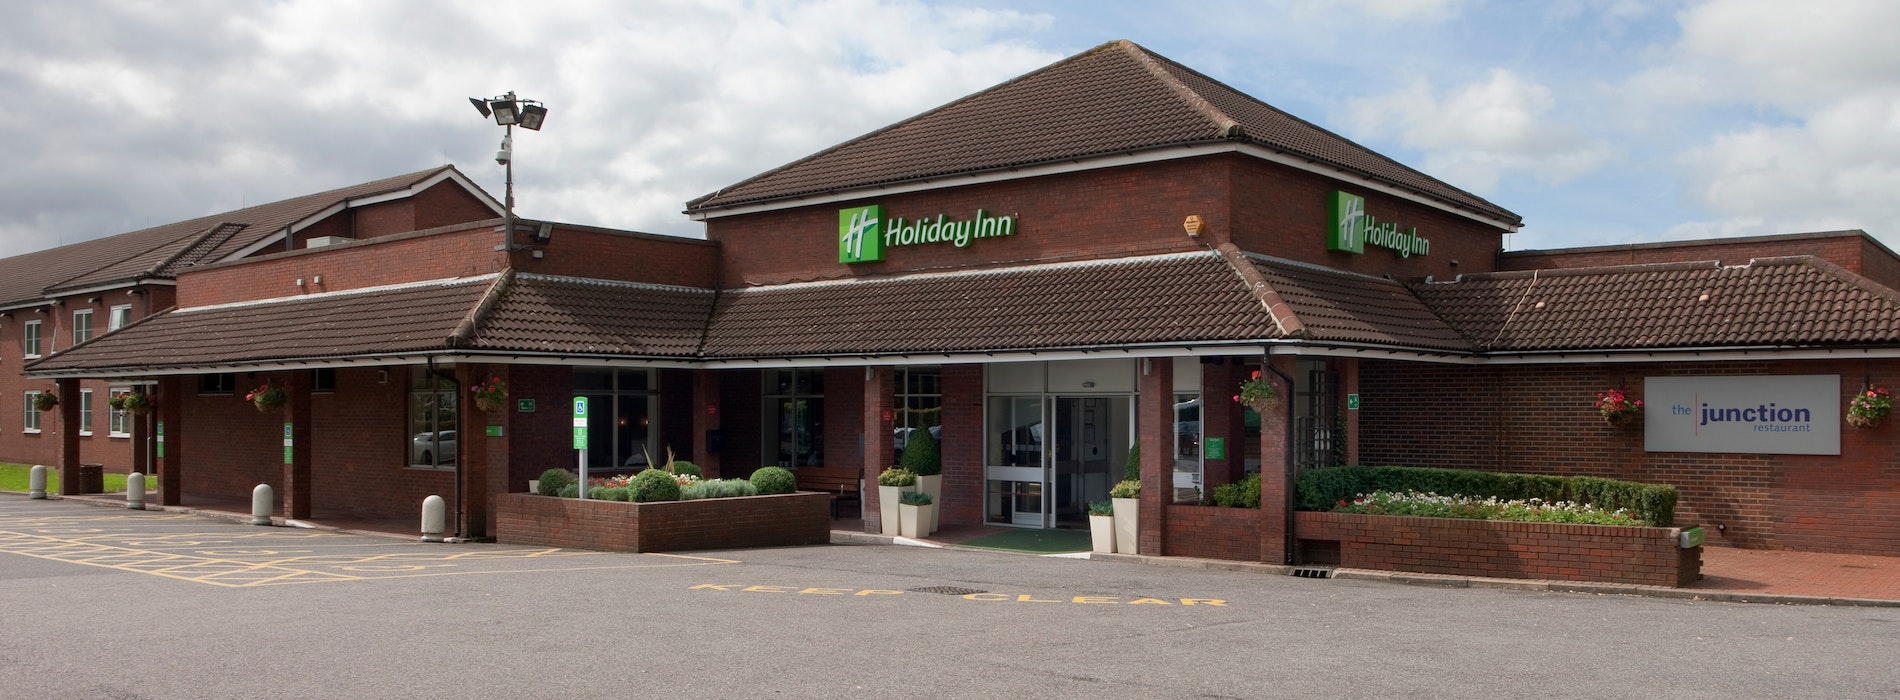 Holiday Inn High Wycombe with LEGOLAND<sup>®</sup> Holidays